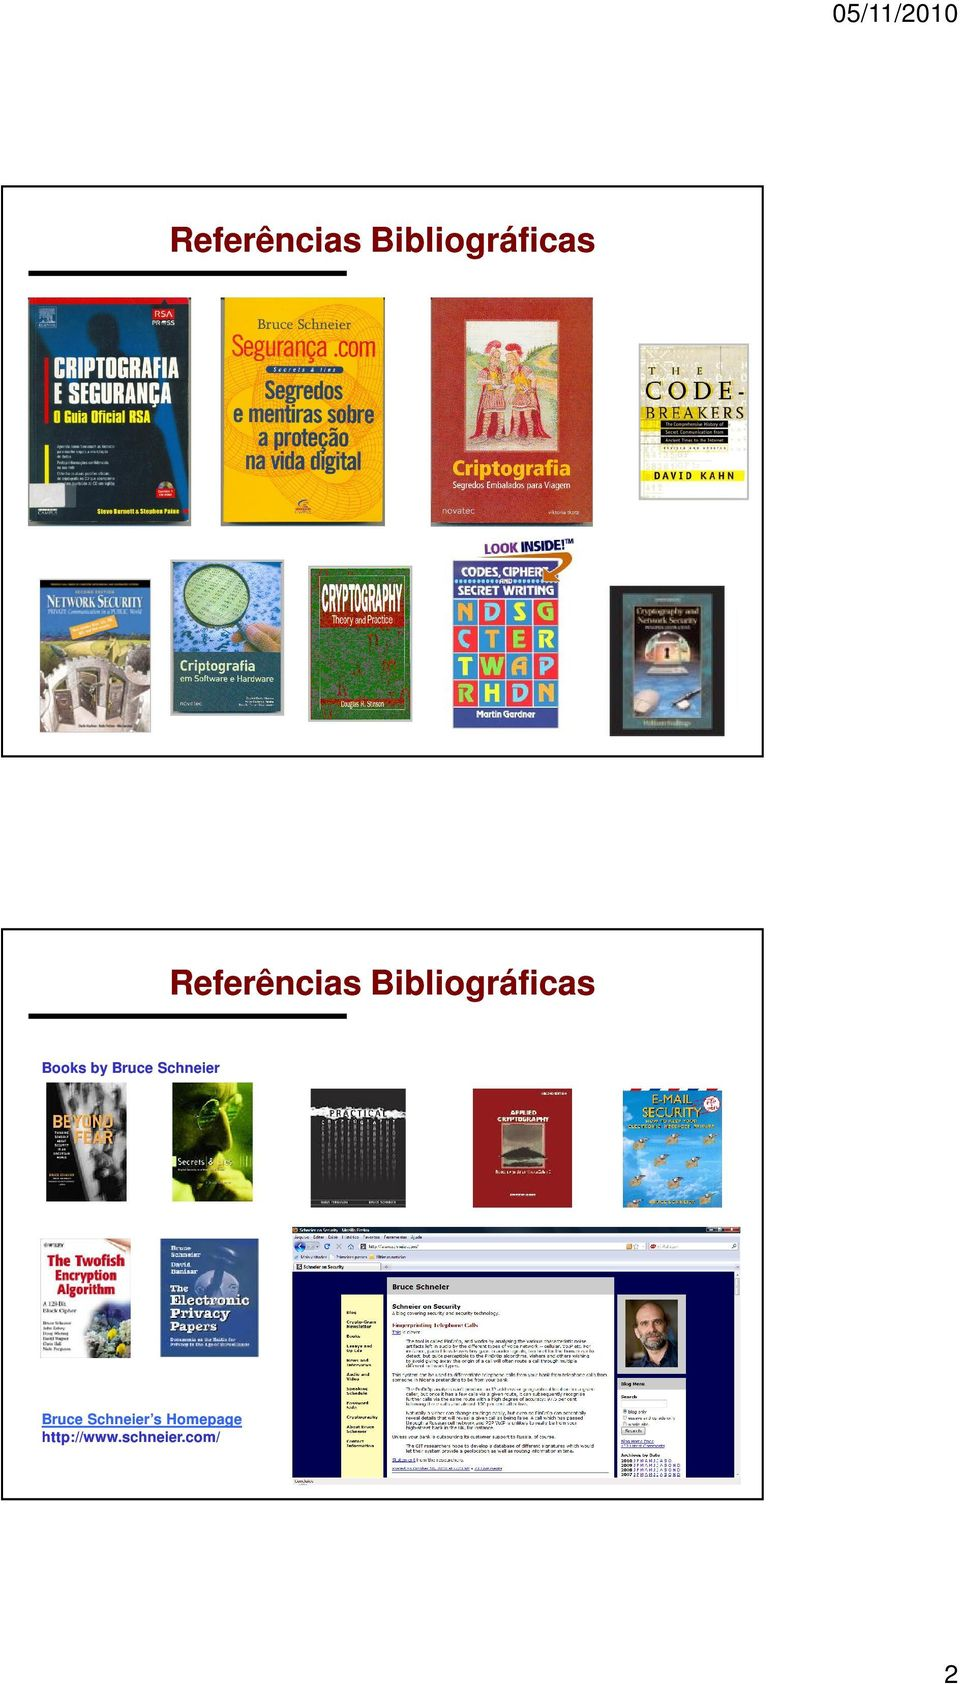 Bibliográficas Books by Bruce